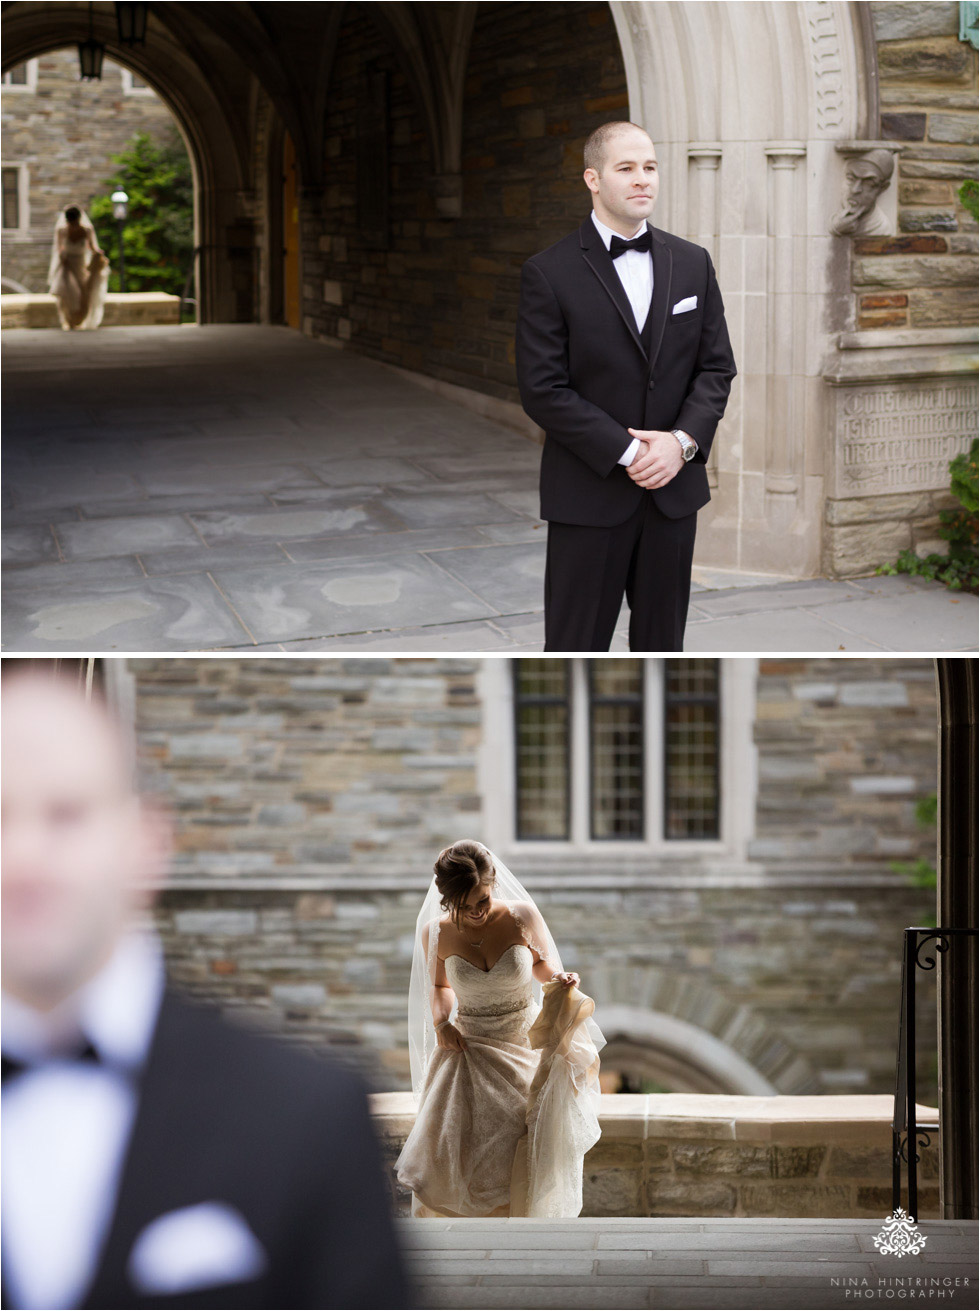 First look at Saint Josephs University campus in Philadelphia, Pennsylvania - Blog of Nina Hintringer Photography - Wedding Photography, Wedding Reportage and Destination Weddings